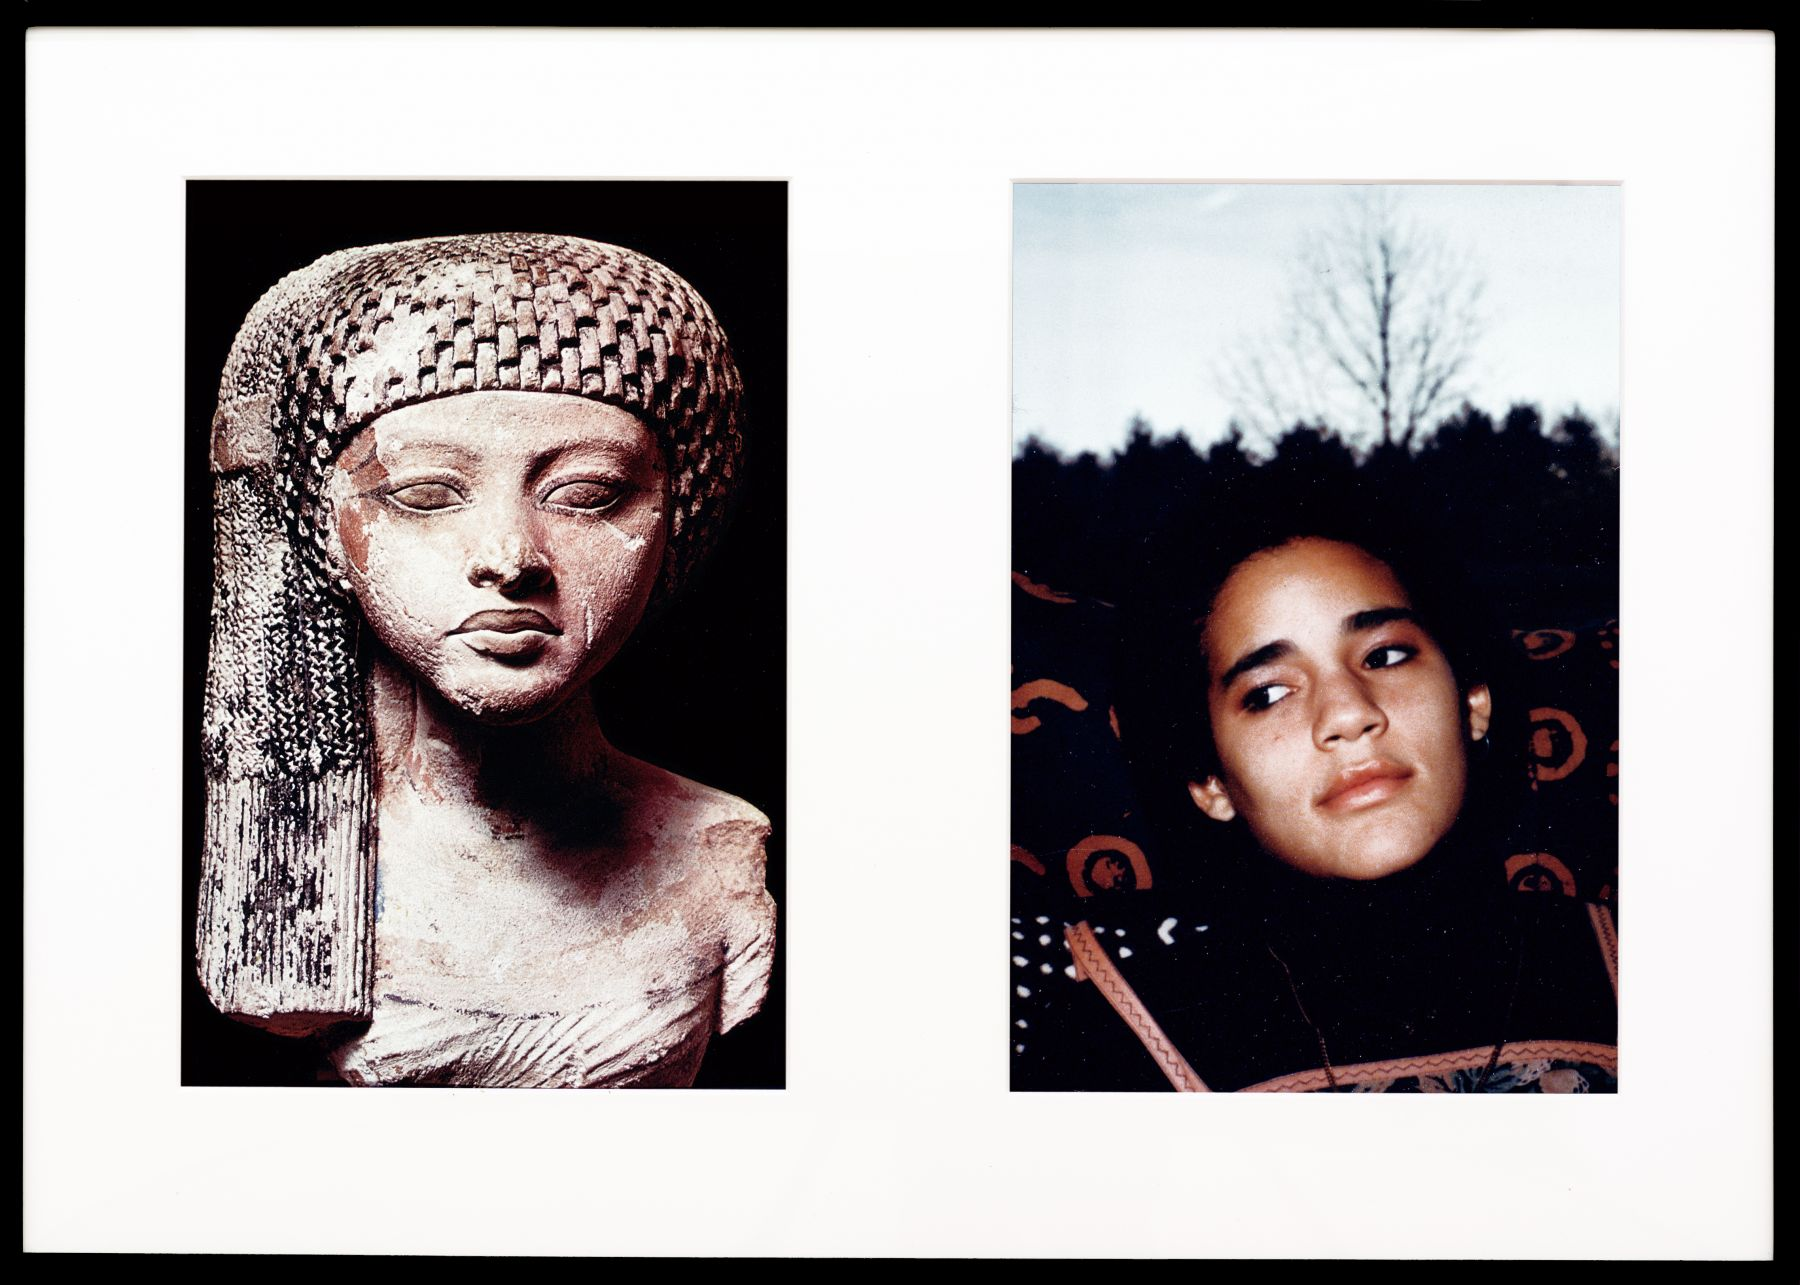 Miscegenated Family Album (Worldly Princesses), L: Nefertiti's daughter, Merytaten; R: Devonia's daughter, Kimberley, 1980/1994, Cibachrome prints, 26h x 37w in (66.04h x 93.98w cm)